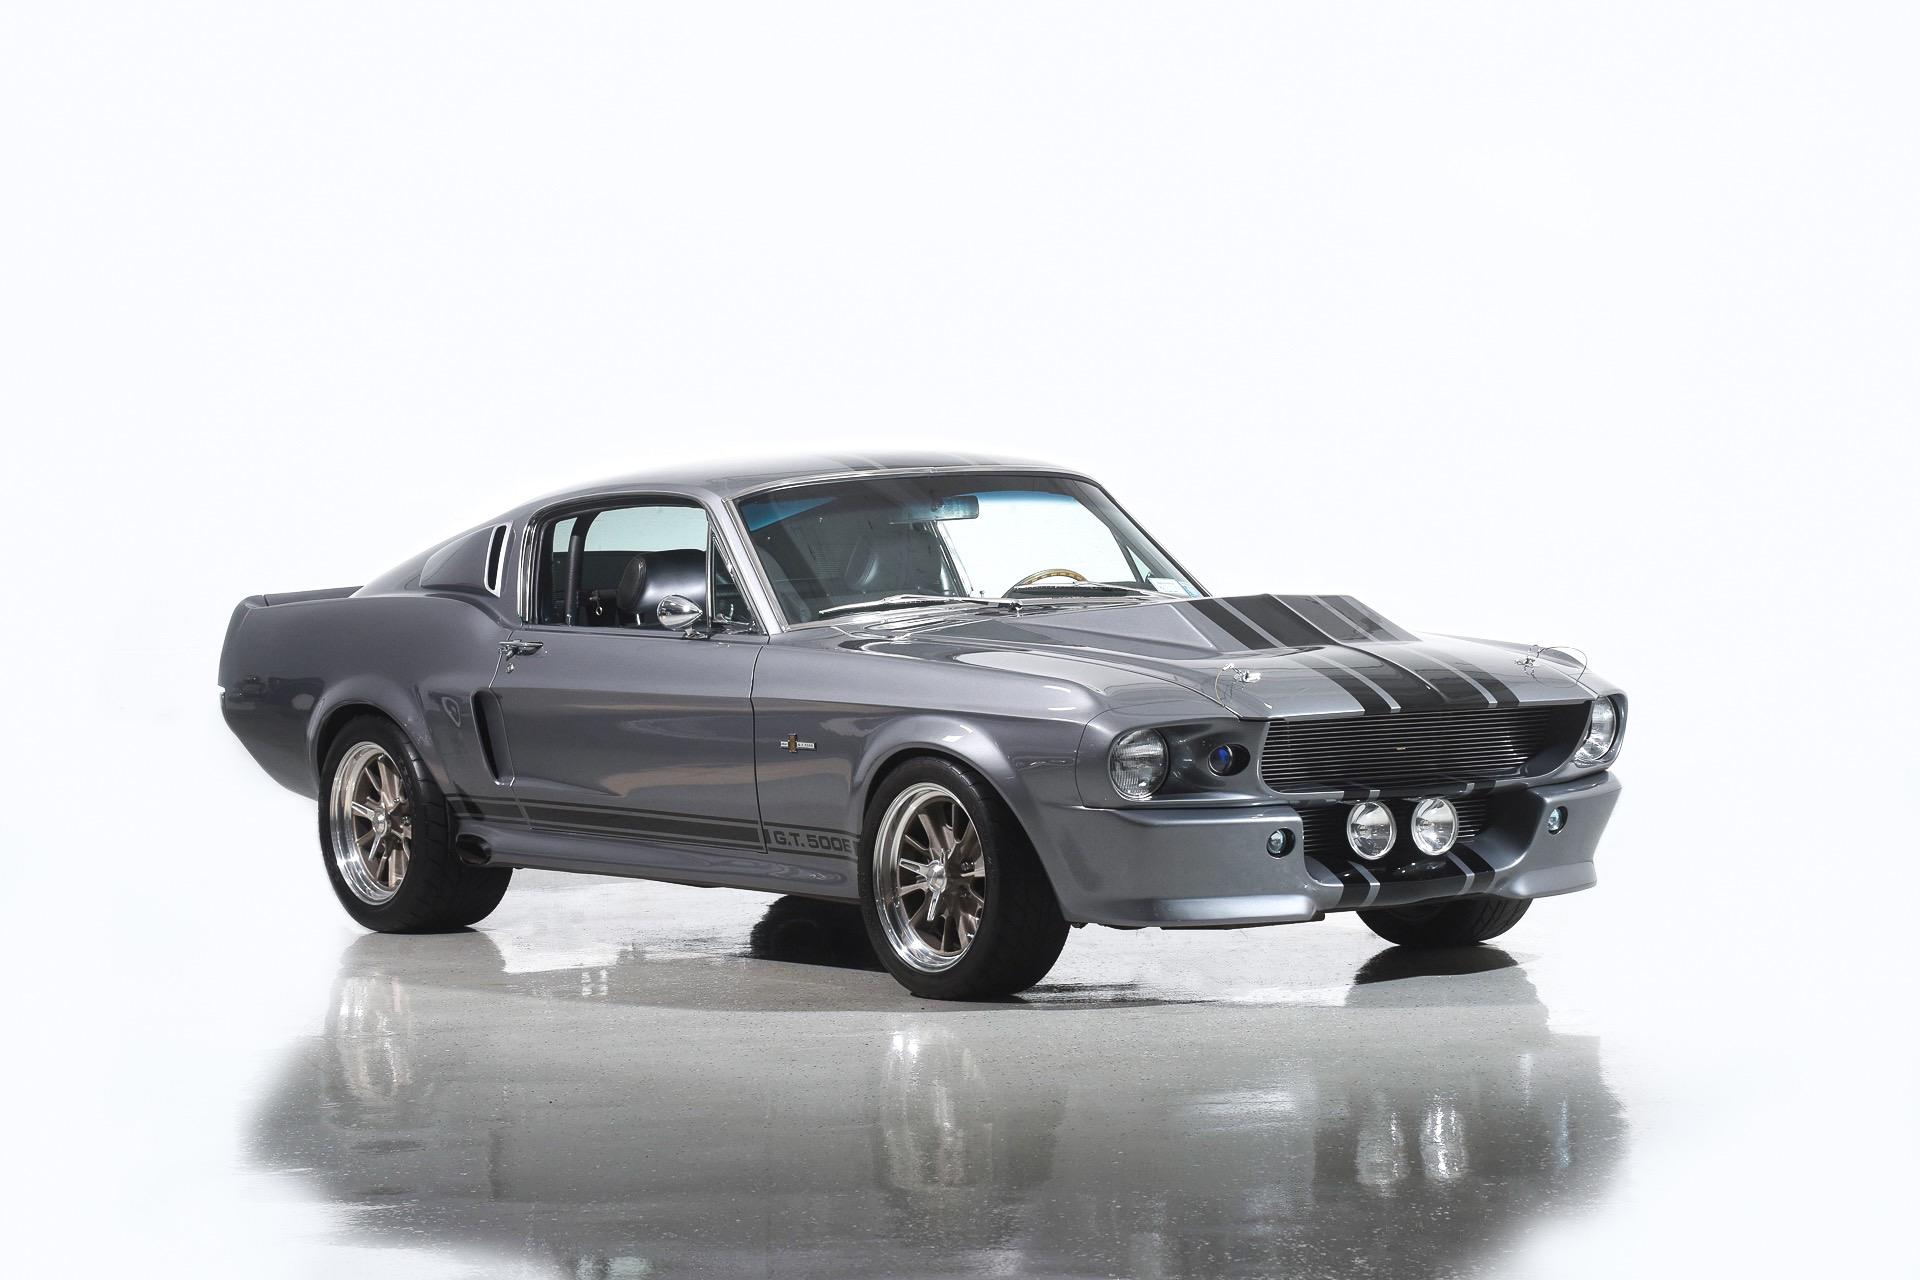 Used 1967 ford shelby mustang gt500e super snake farmingdale ny